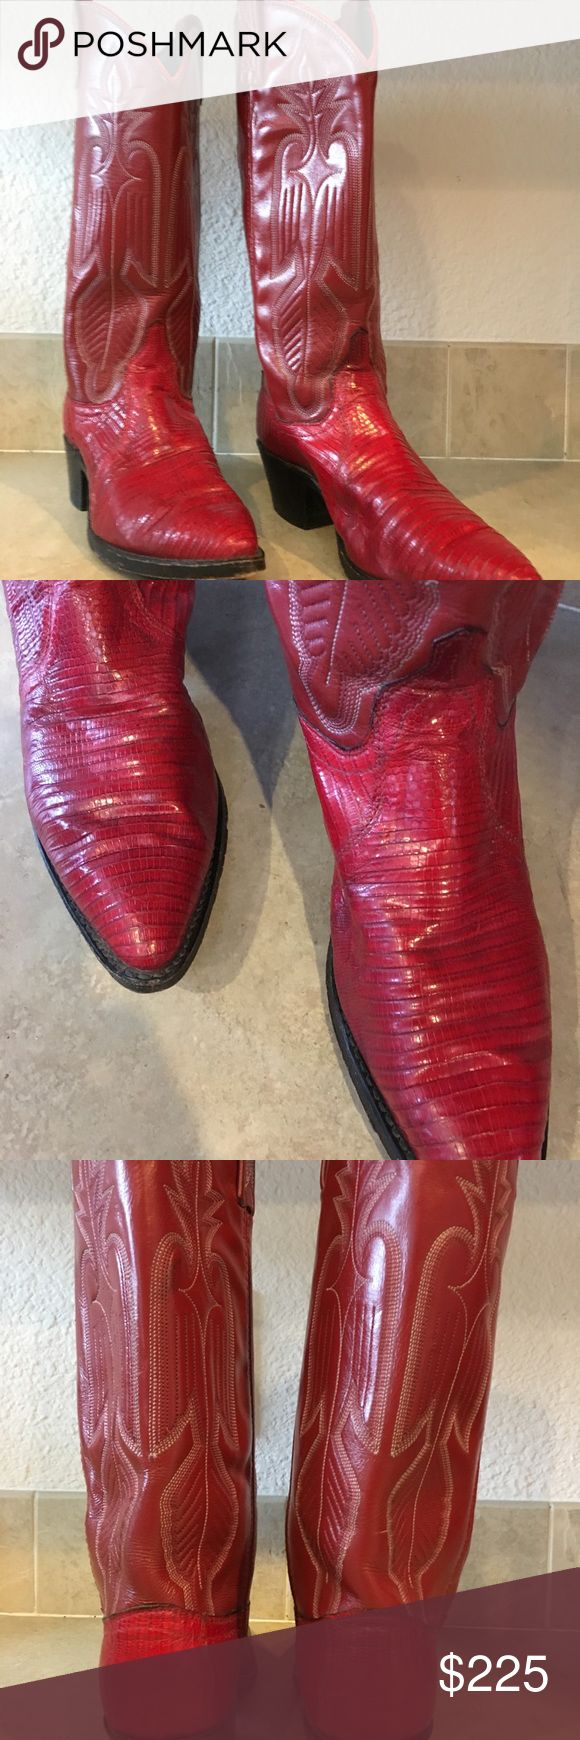 Women's Red Dan Post Boots Women's size 7 medium, if you have a narrow foot 7 1/2 could fit. Worn only twice.  Cash only no negotiators these boots sold for $350 and they are lovely and in pristine condition.  Selling for $225 plus shipping Call or text 707-7 nine9-zero723 Dan Post Shoes Heeled Boots